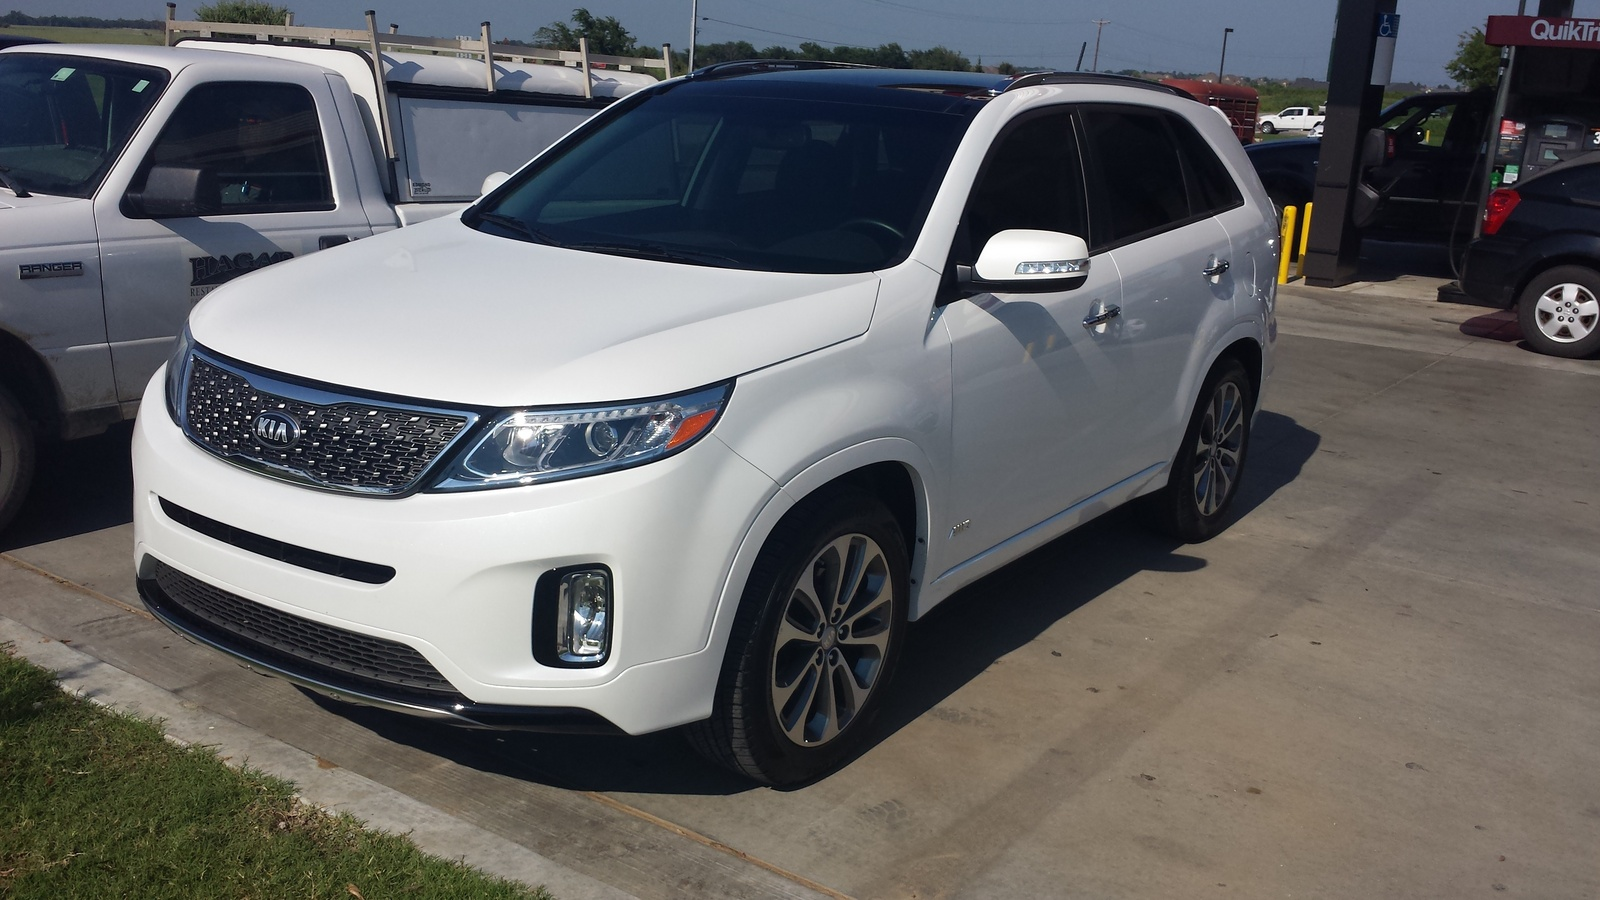 2015 kia sorento ex for sale cargurus autos post. Black Bedroom Furniture Sets. Home Design Ideas